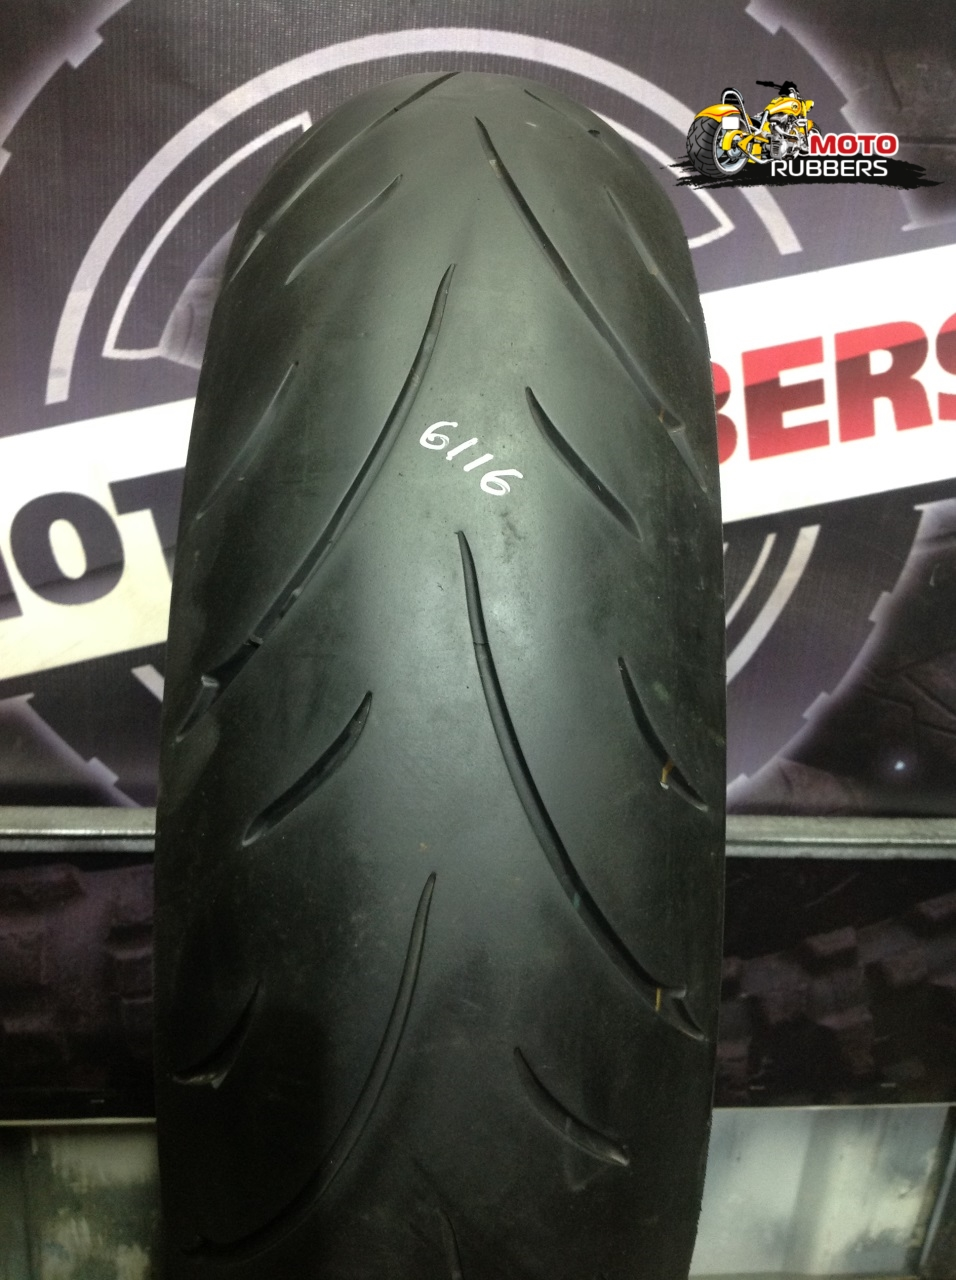 160/60 R17 Dunlop qualifier